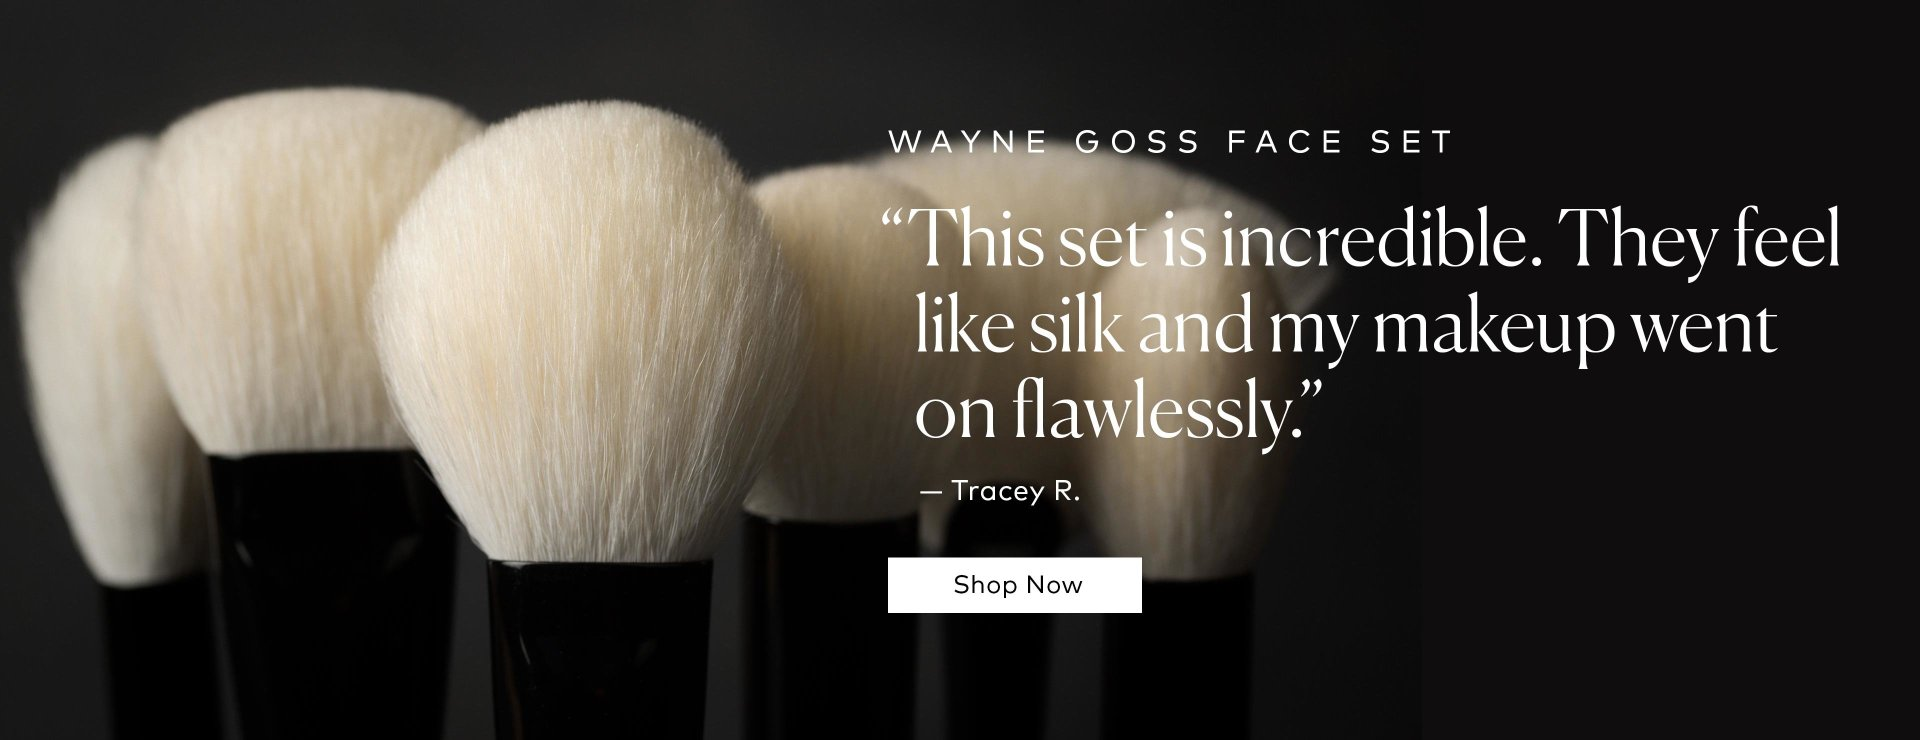 Shop Wayne Goss' The Face Set on Beautylish.com